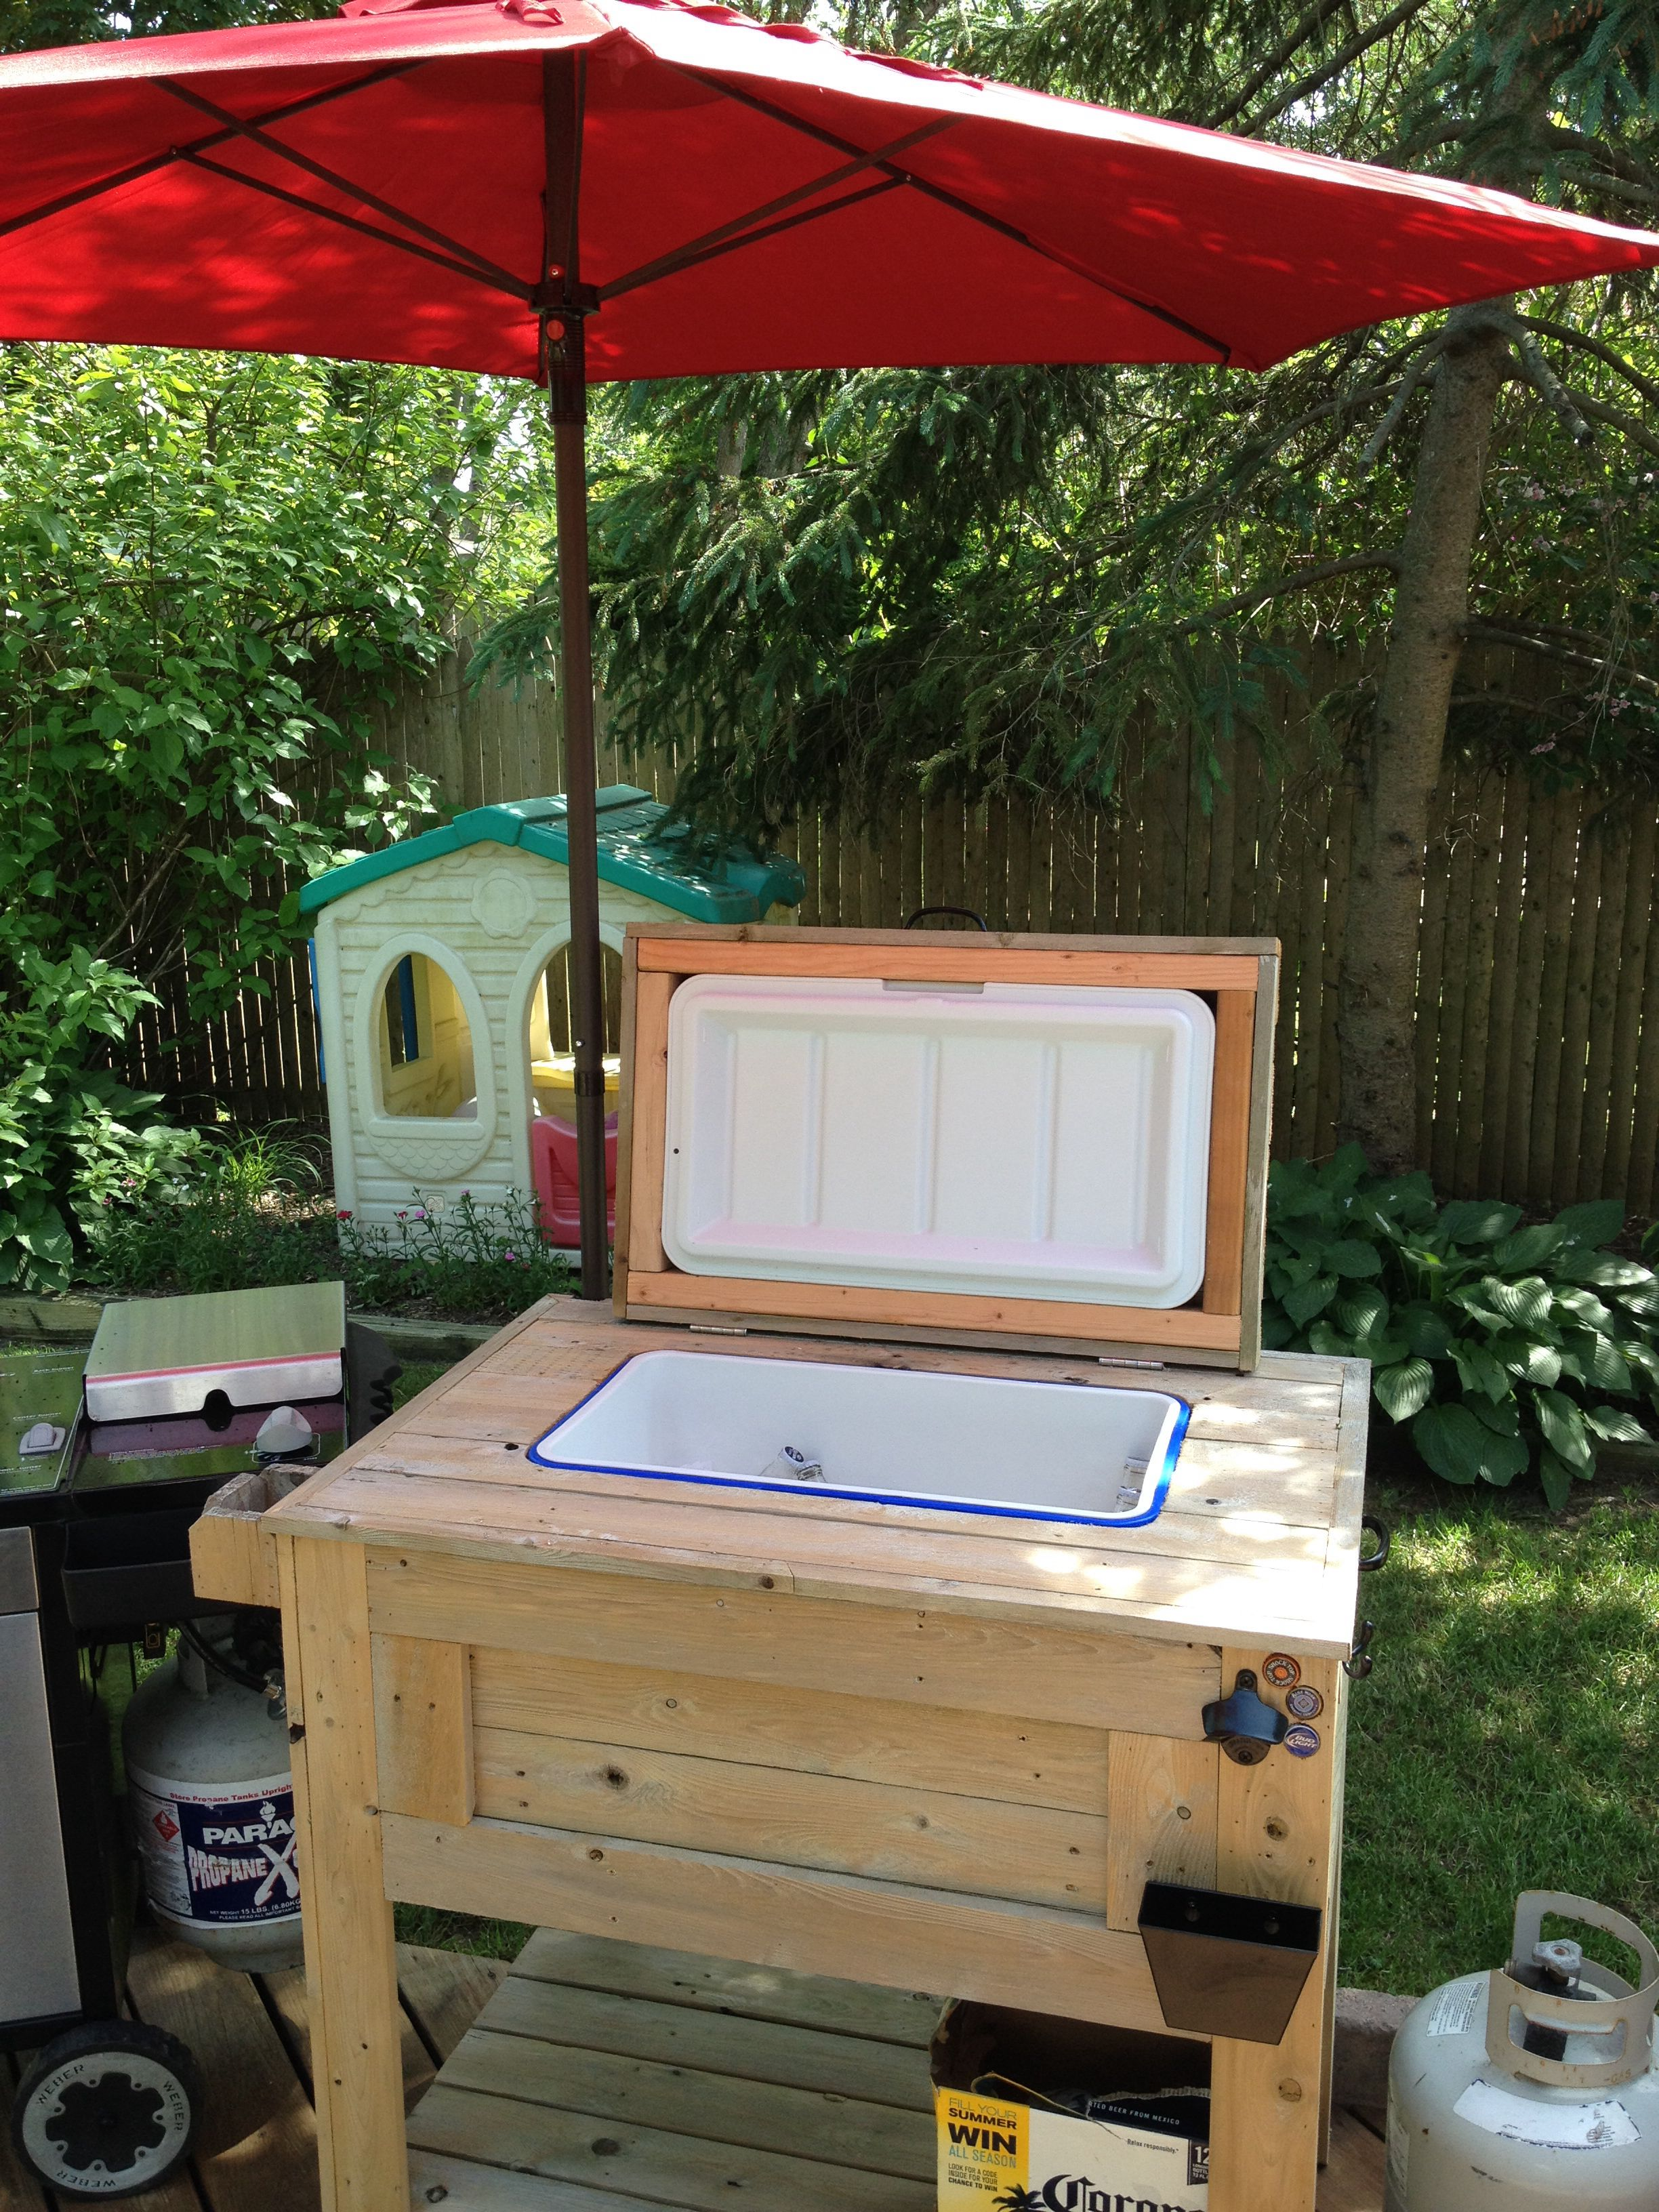 Backyard beer cooler Used a 48qt cooler and built around it with